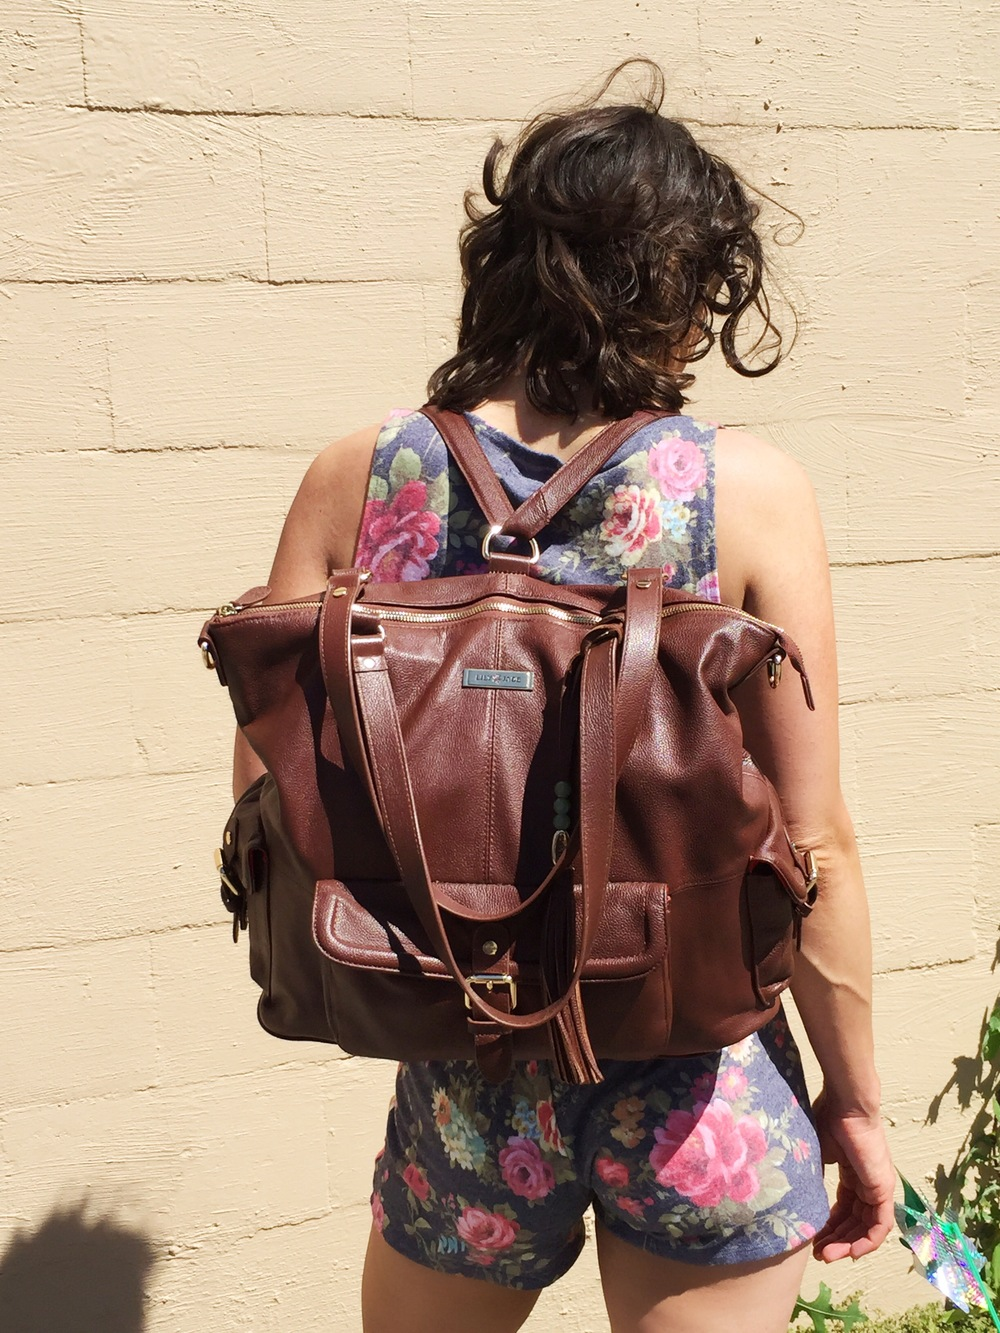 Lily Jade Meggan in Brandy - janny: organically. #diaperbags